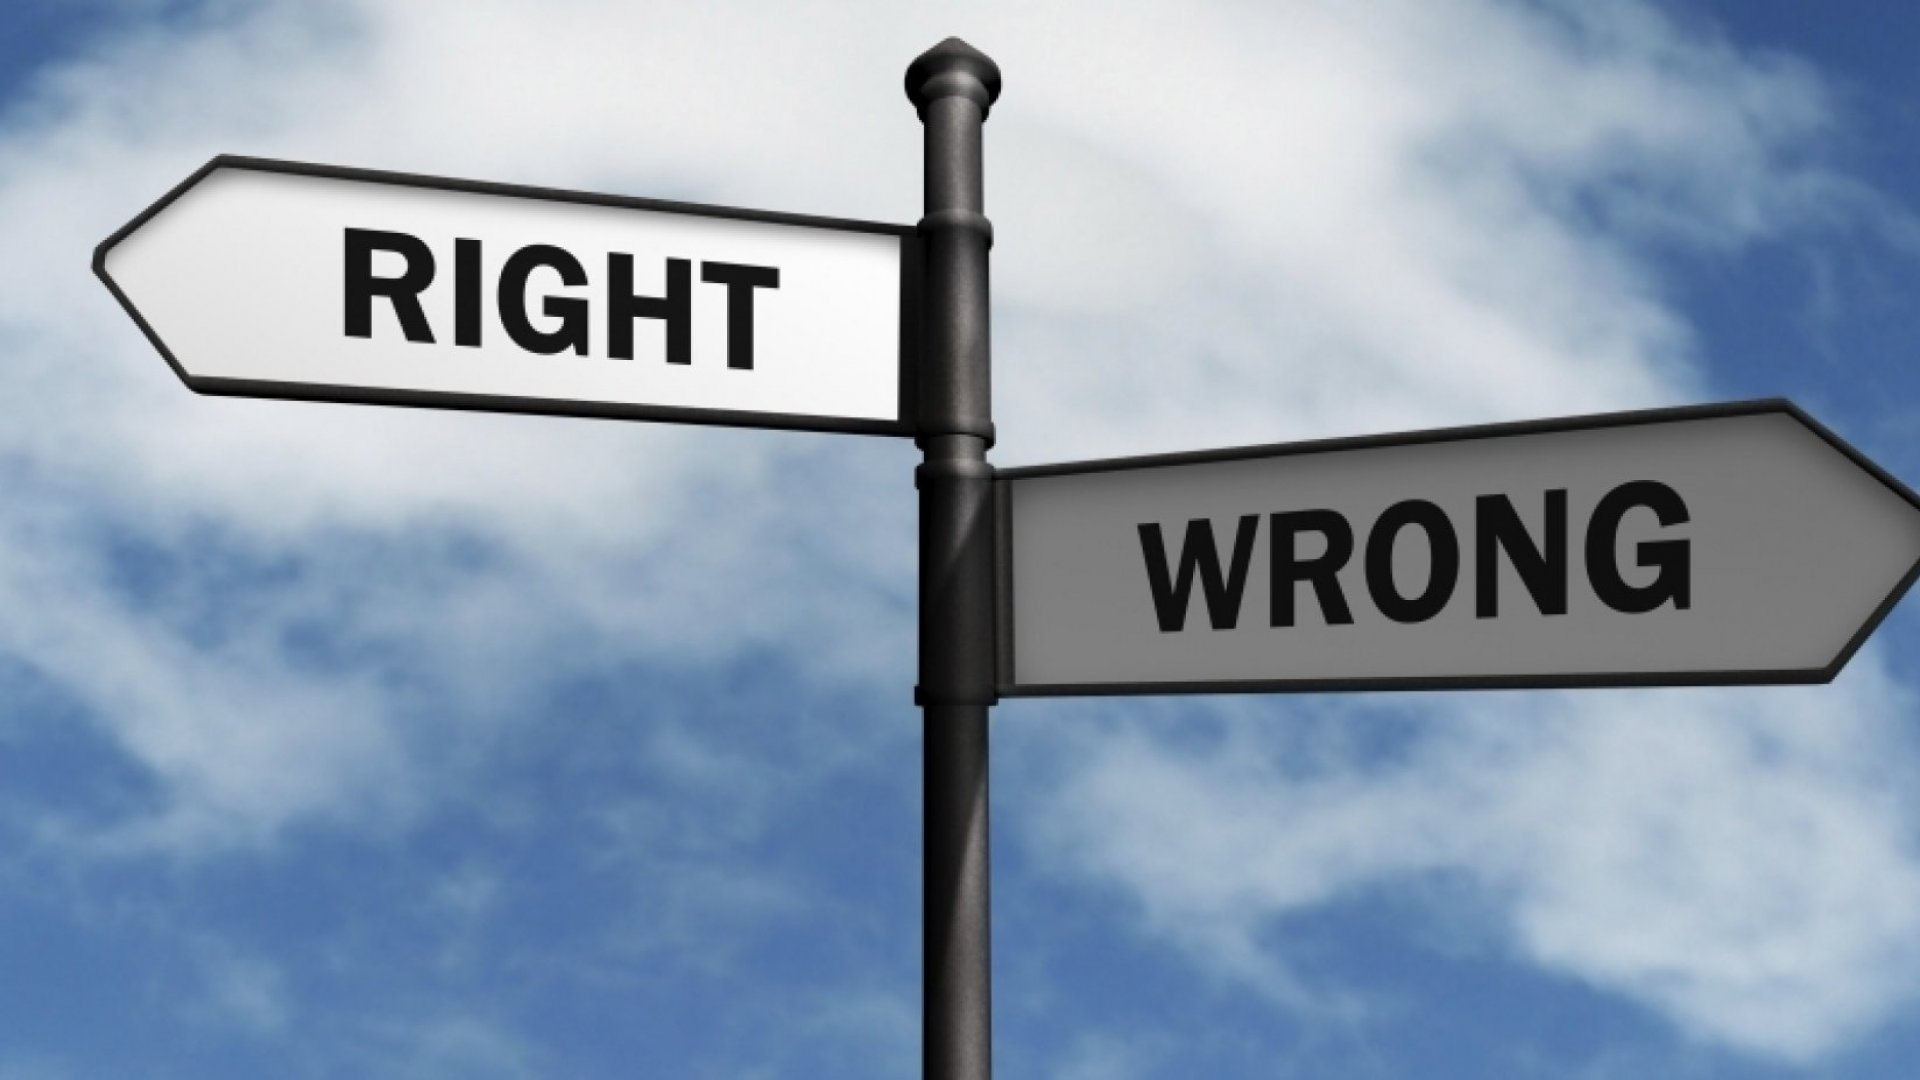 Being right is ingrained